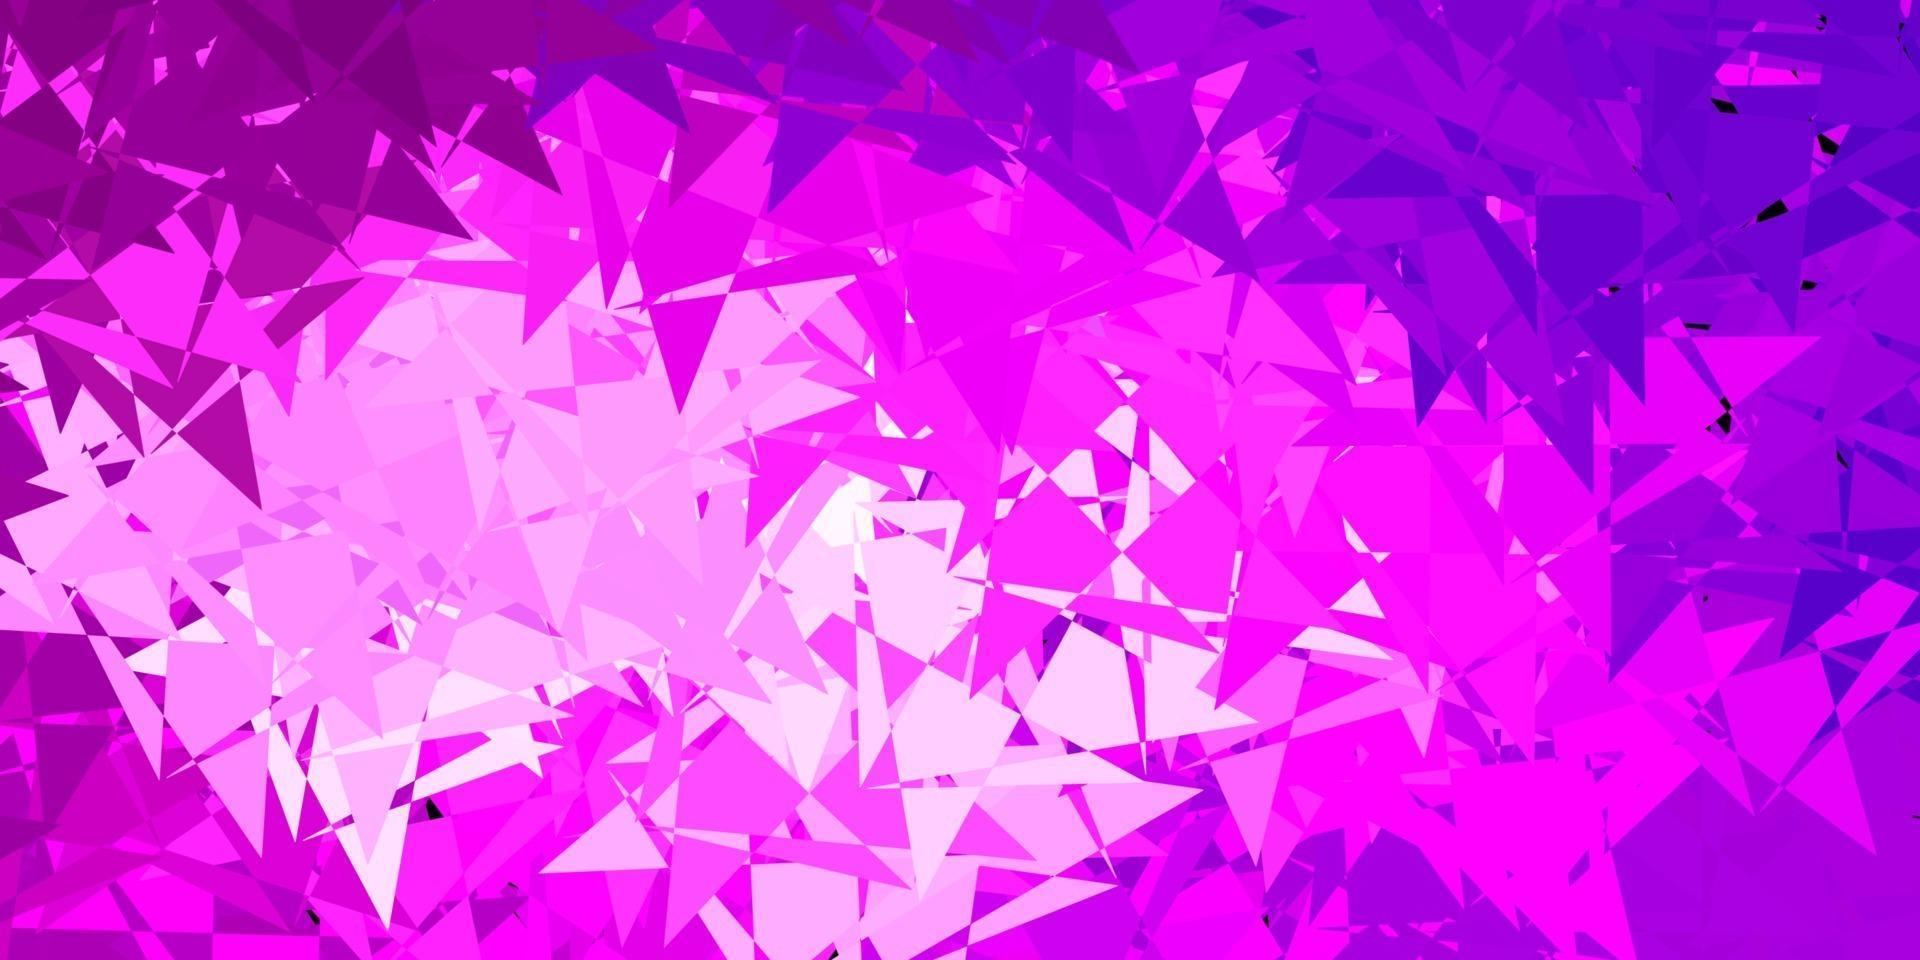 Light purple, pink vector pattern with polygonal shapes.